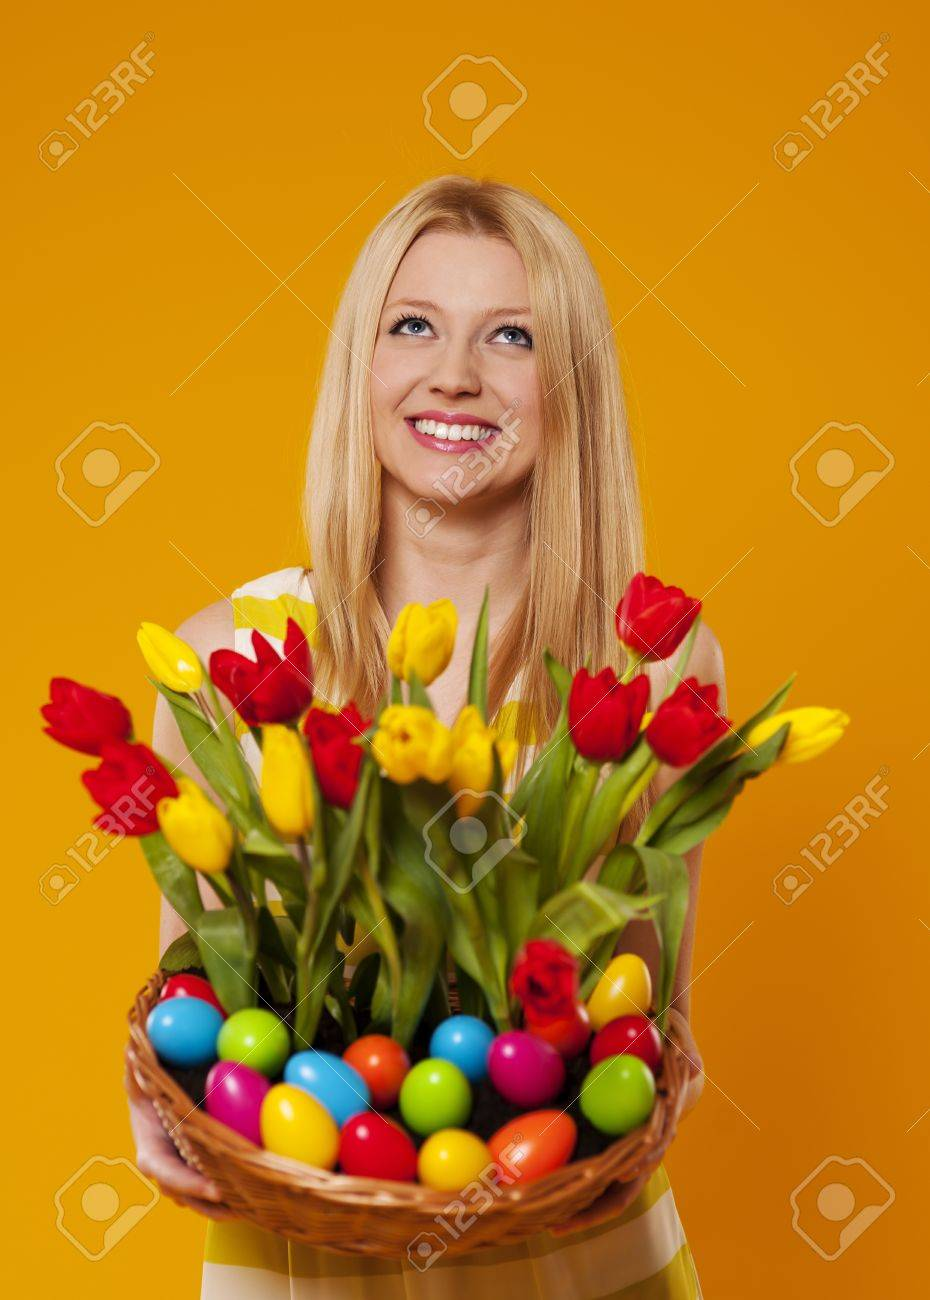 Happy woman holding basket with spring flower and easter eggs Stock Photo - 18208337